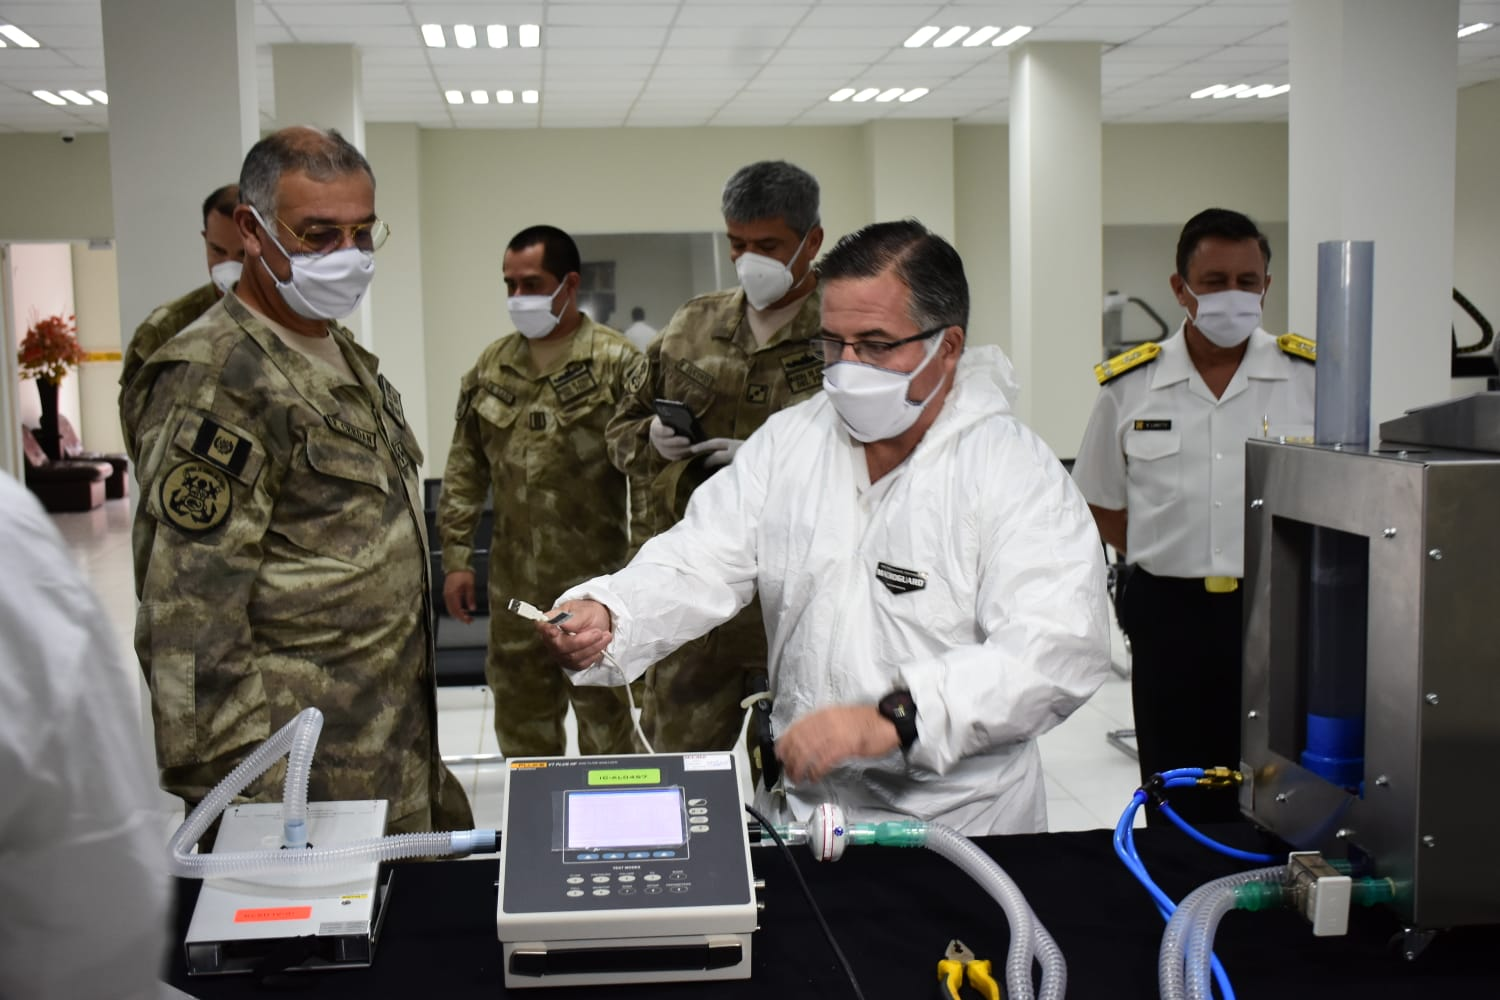 Peruvian Navy Develops Ventilators amid Coronavirus Emergency